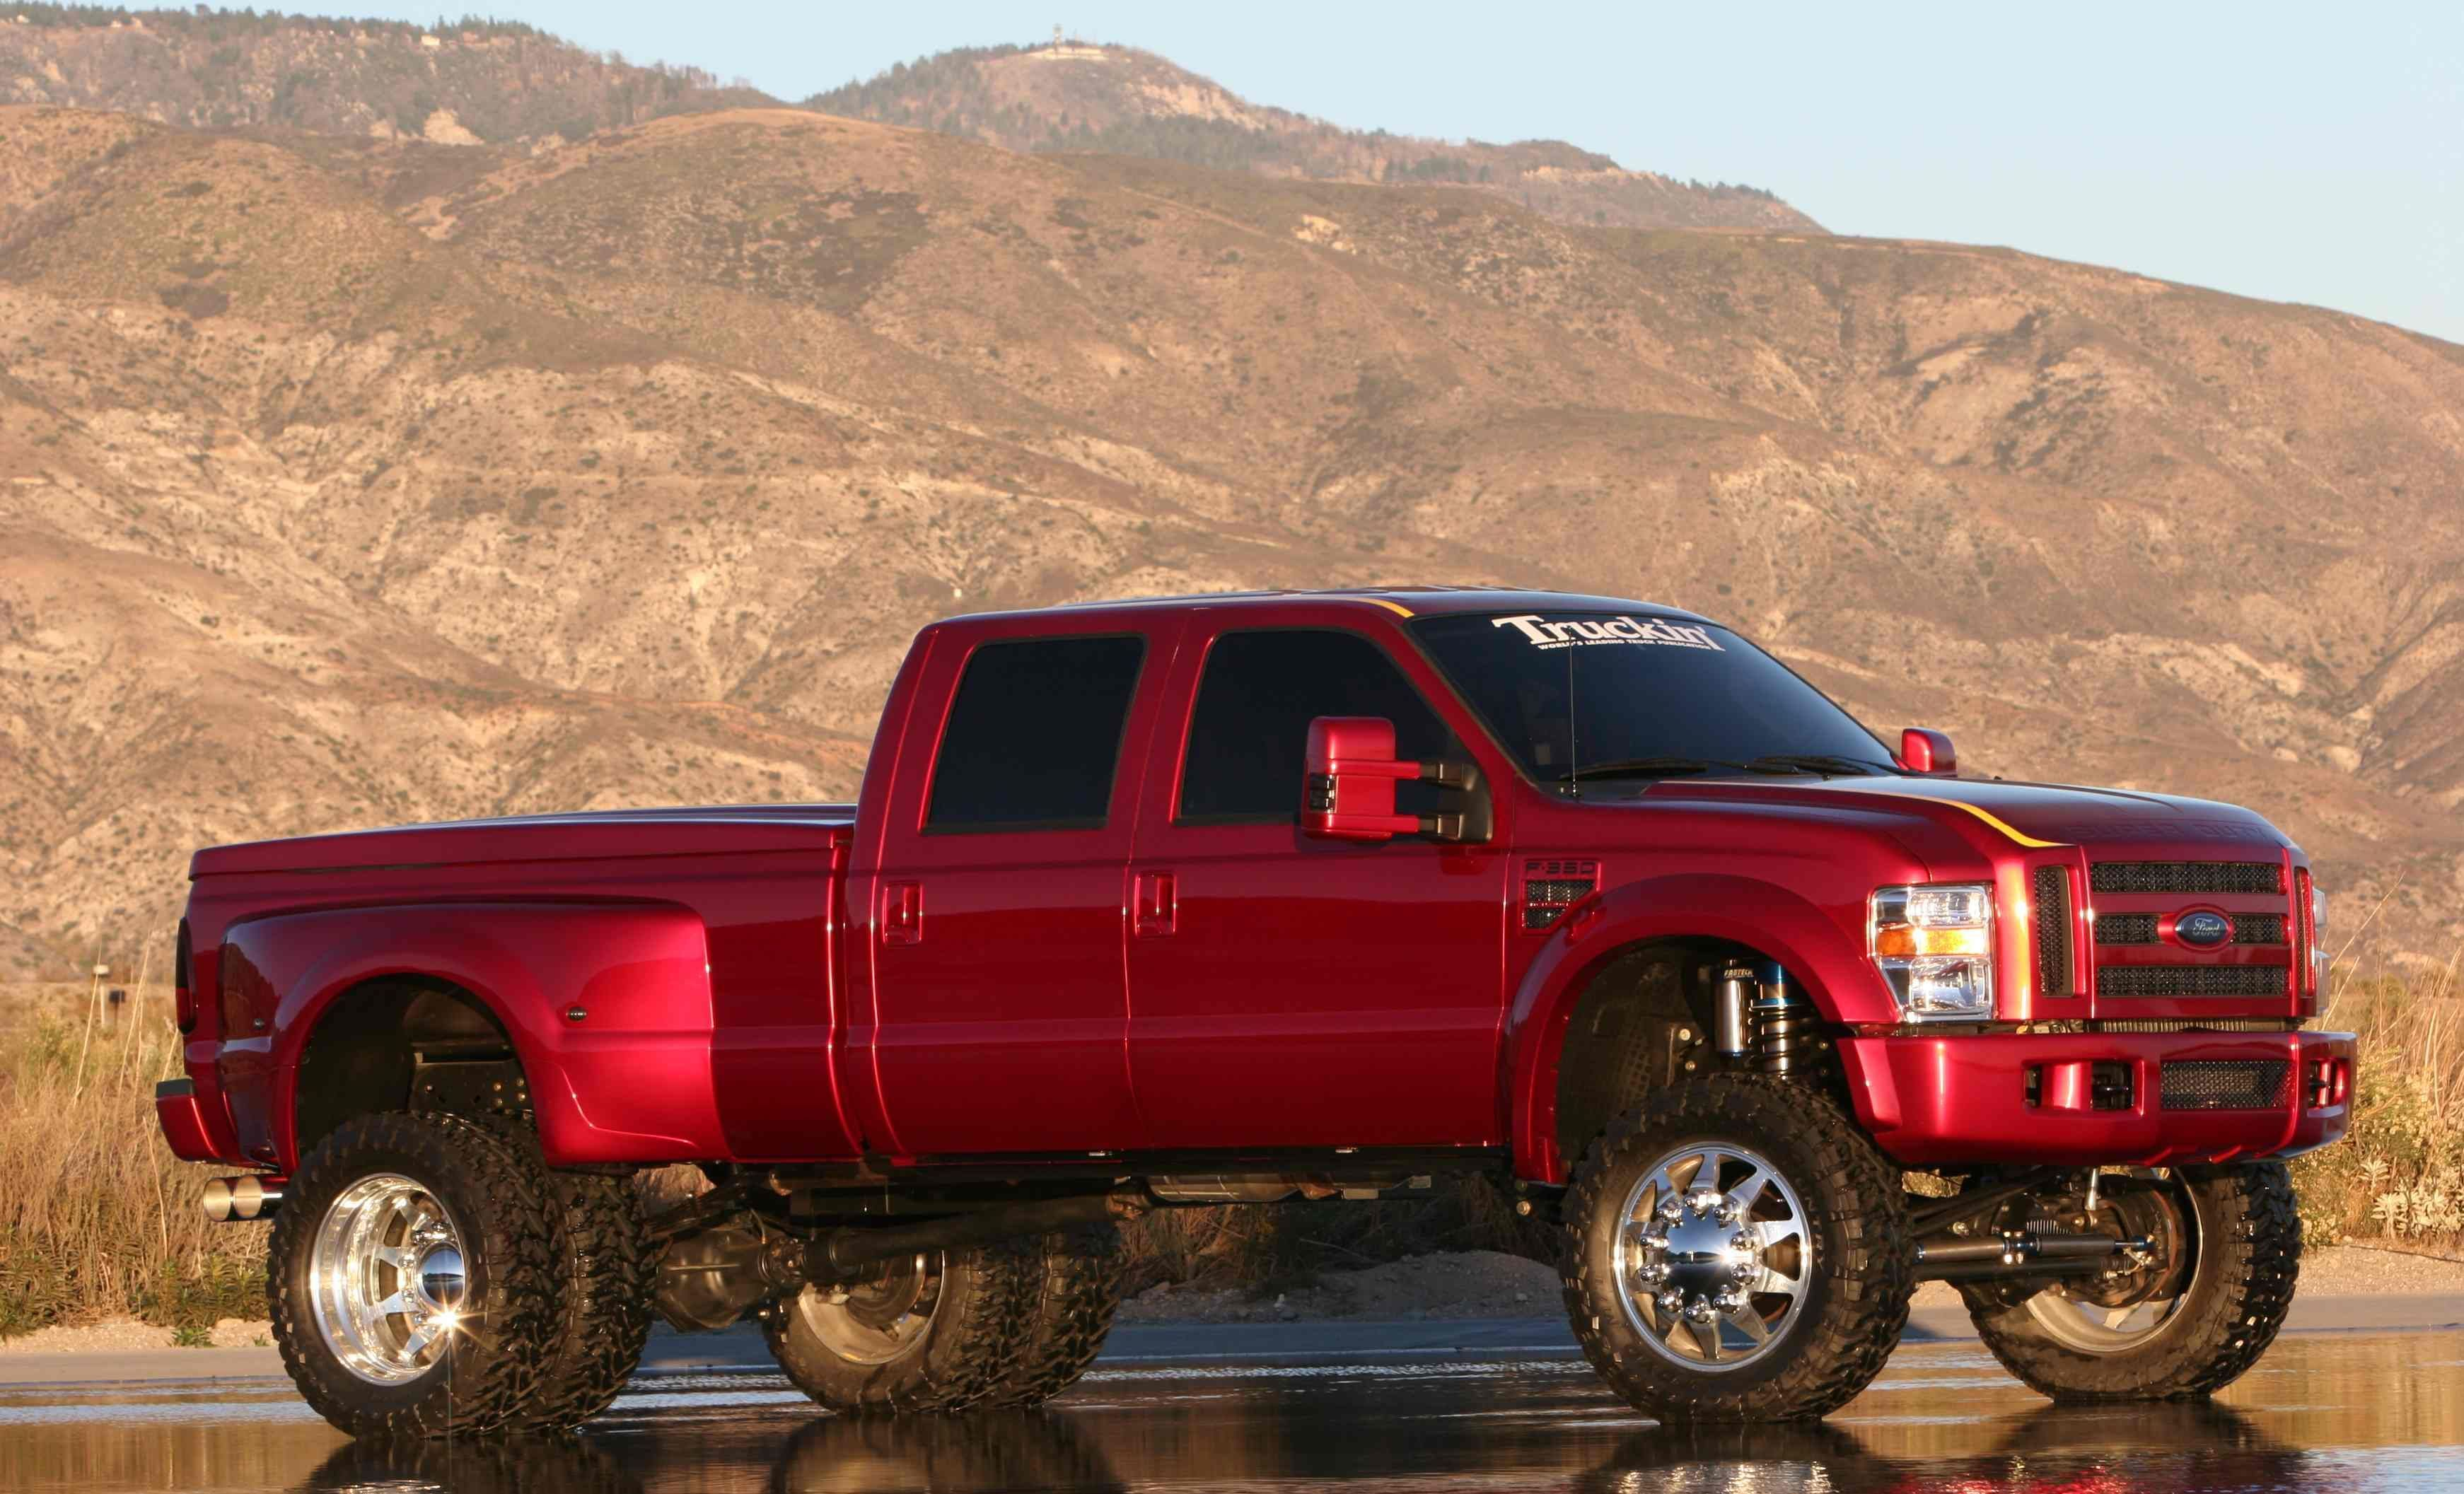 Dually truck 2005 mars red amg c55 1 out of 1299 eurocharged tune aem filters